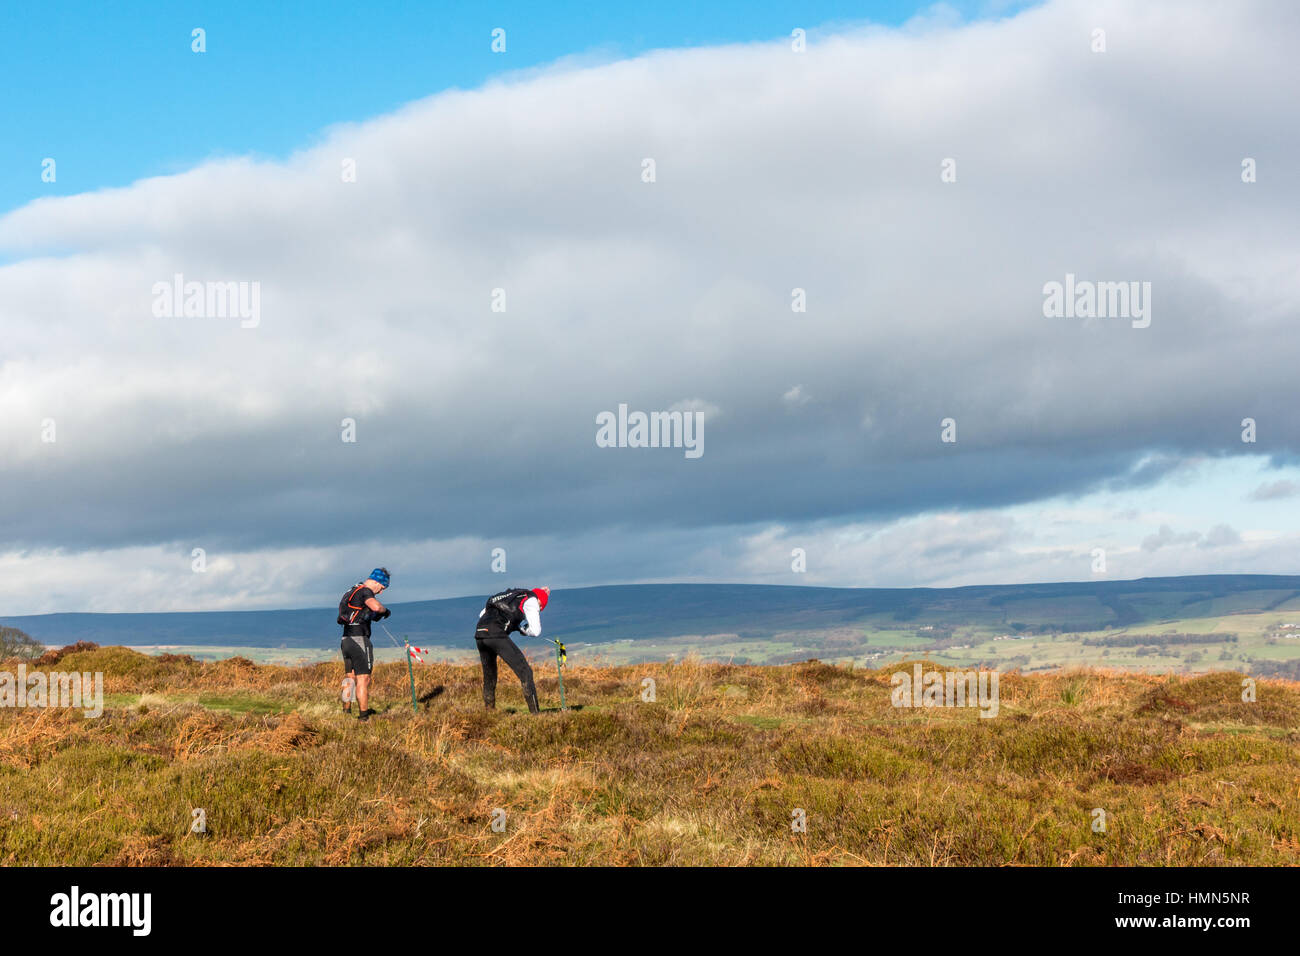 UK Sport : Ilkley Moor, West Yorkshire, Royaume-Uni. 4 février 2017. Porteur de prendre part à la Photo Stock